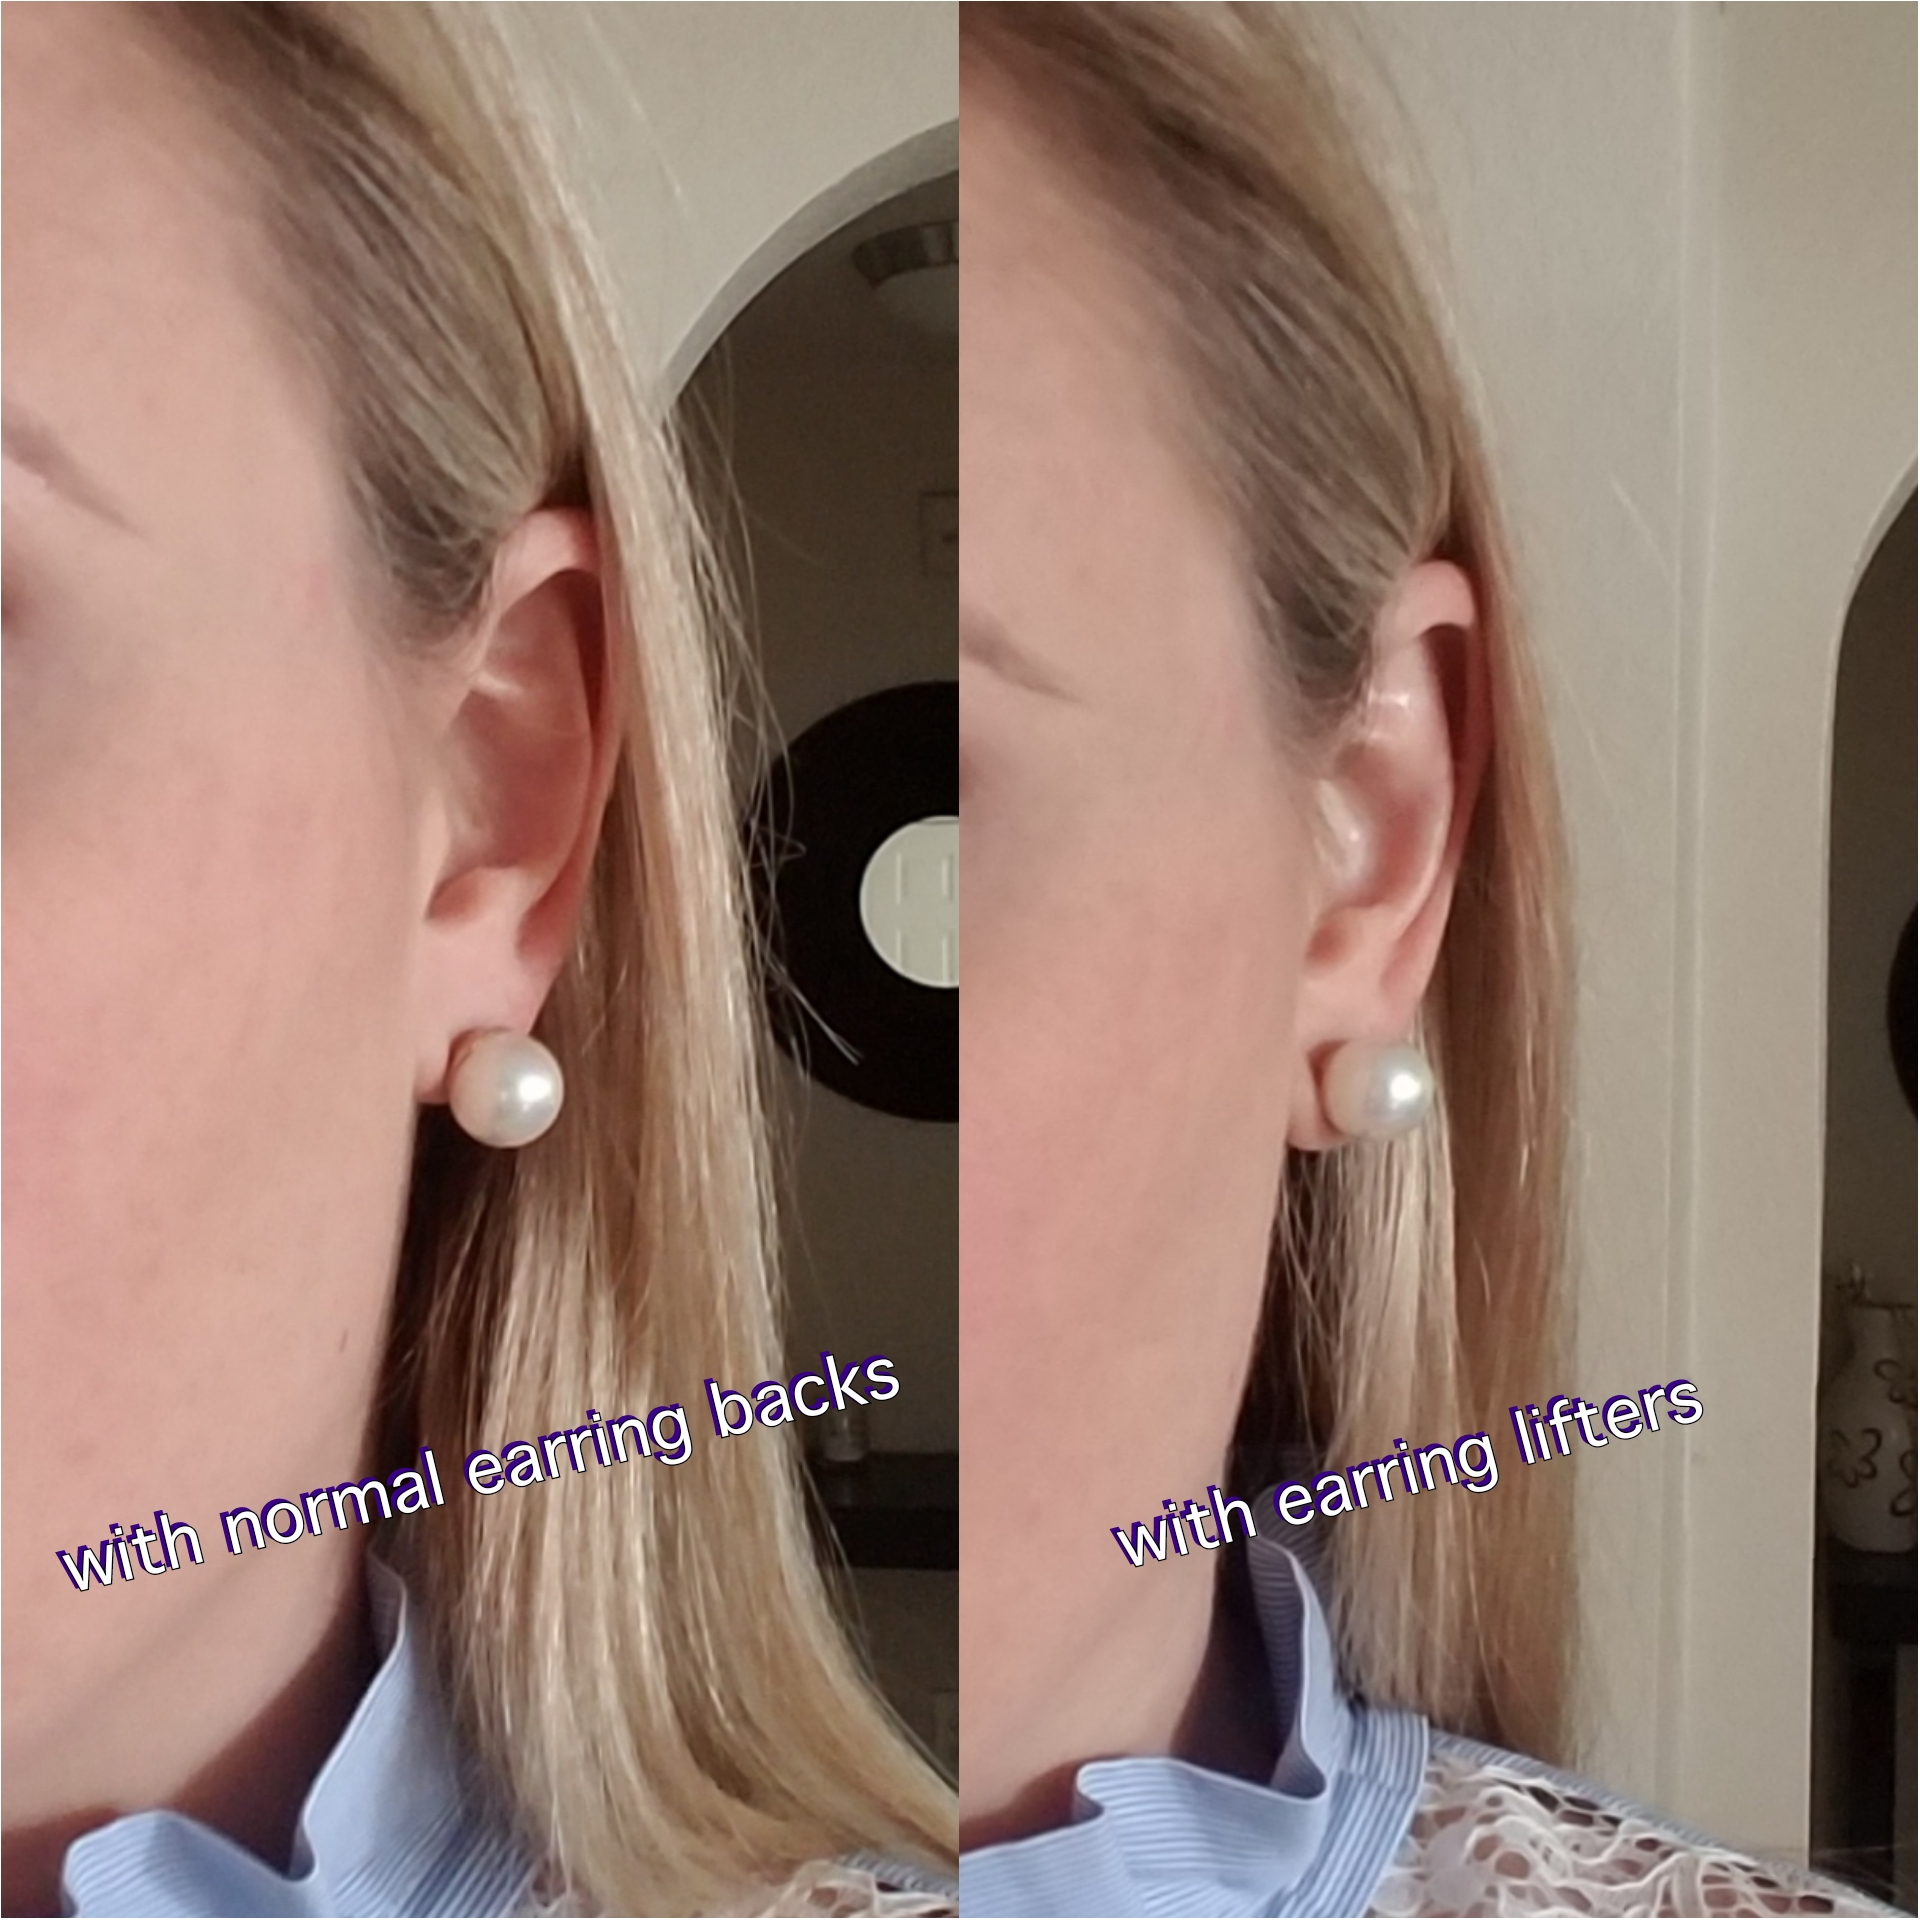 How-support-your-earlobes-fabulouslyoverdressed